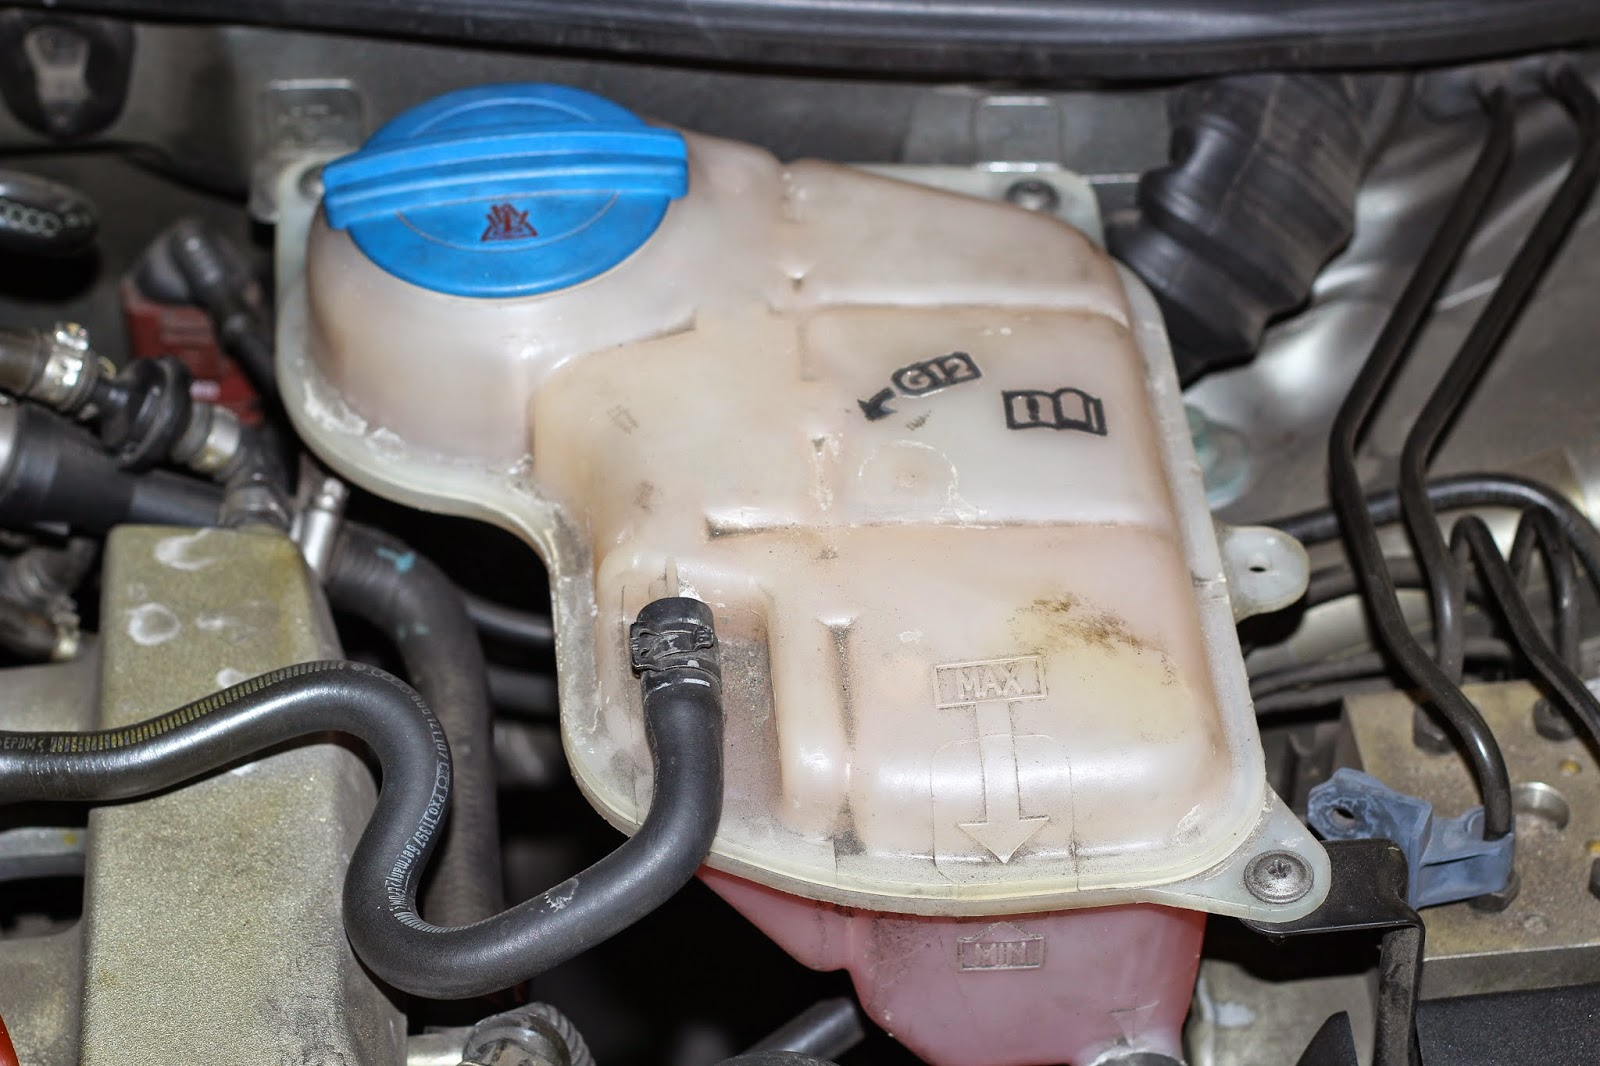 medium resolution of remove three screws of the coolant tank lift it away remove the coolant sensor connector at the bottom of the tank gently lift it aside out of the way